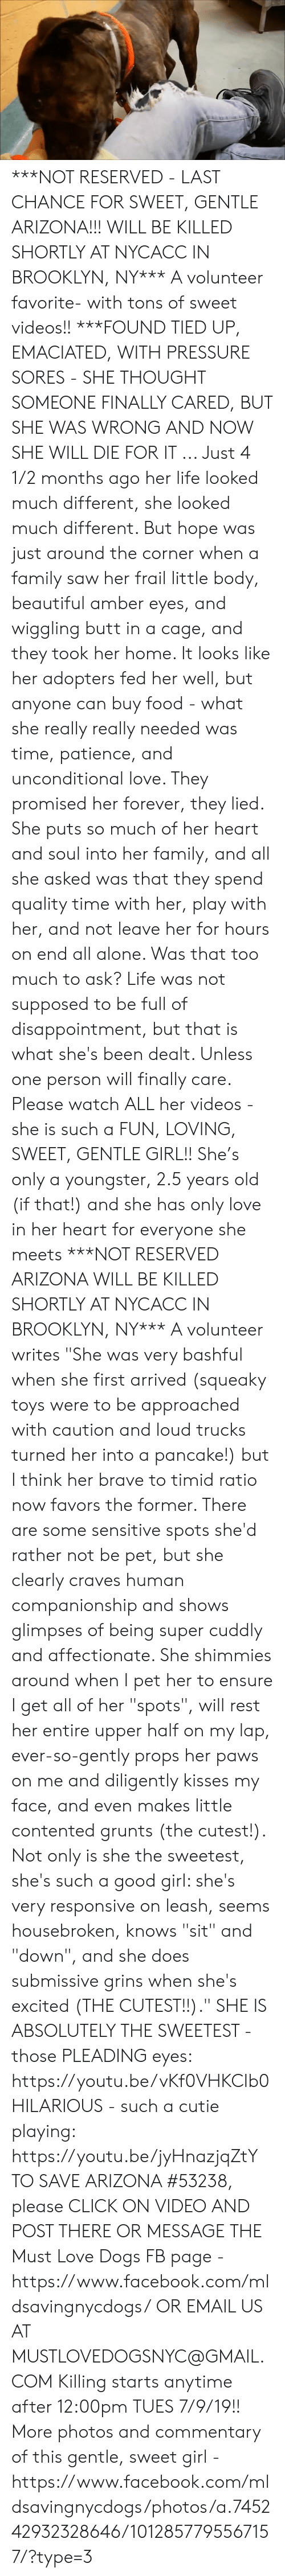 """Being Alone, Beautiful, and Butt: ***NOT RESERVED - LAST CHANCE FOR SWEET, GENTLE ARIZONA!!! WILL BE KILLED SHORTLY AT NYCACC IN BROOKLYN, NY*** A volunteer favorite- with tons of sweet videos!!   ***FOUND TIED UP, EMACIATED, WITH PRESSURE SORES - SHE THOUGHT SOMEONE FINALLY CARED, BUT SHE WAS WRONG AND NOW SHE WILL DIE FOR IT ... Just 4 1/2 months ago her life looked much different, she looked much different. But hope was just around the corner when a family saw her frail little body, beautiful amber eyes, and wiggling butt in a cage, and they took her home. It looks like her adopters fed her well, but anyone can buy food - what she really really needed was time, patience, and unconditional love. They promised her forever, they lied. She puts so much of her heart and soul into her family, and all she asked was that they spend quality time with her, play with her, and not leave her for hours on end all alone. Was that too much to ask? Life was not supposed to be full of disappointment, but that is what she's been dealt. Unless one person will finally care. Please watch ALL her videos - she is such a FUN, LOVING, SWEET, GENTLE GIRL!! She's only a youngster, 2.5 years old (if that!) and she has only love in her heart for everyone she meets ***NOT RESERVED ARIZONA WILL BE KILLED SHORTLY AT NYCACC IN BROOKLYN, NY***  A volunteer writes """"She was very bashful when she first arrived (squeaky toys were to be approached with caution and loud trucks turned her into a pancake!) but I think her brave to timid ratio now favors the former. There are some sensitive spots she'd rather not be pet, but she clearly craves human companionship and shows glimpses of being super cuddly and affectionate. She shimmies around when I pet her to ensure I get all of her """"spots"""", will rest her entire upper half on my lap, ever-so-gently props her paws on me and diligently kisses my face, and even makes little contented grunts (the cutest!). Not only is she the sweetest, she's such a good girl: s"""